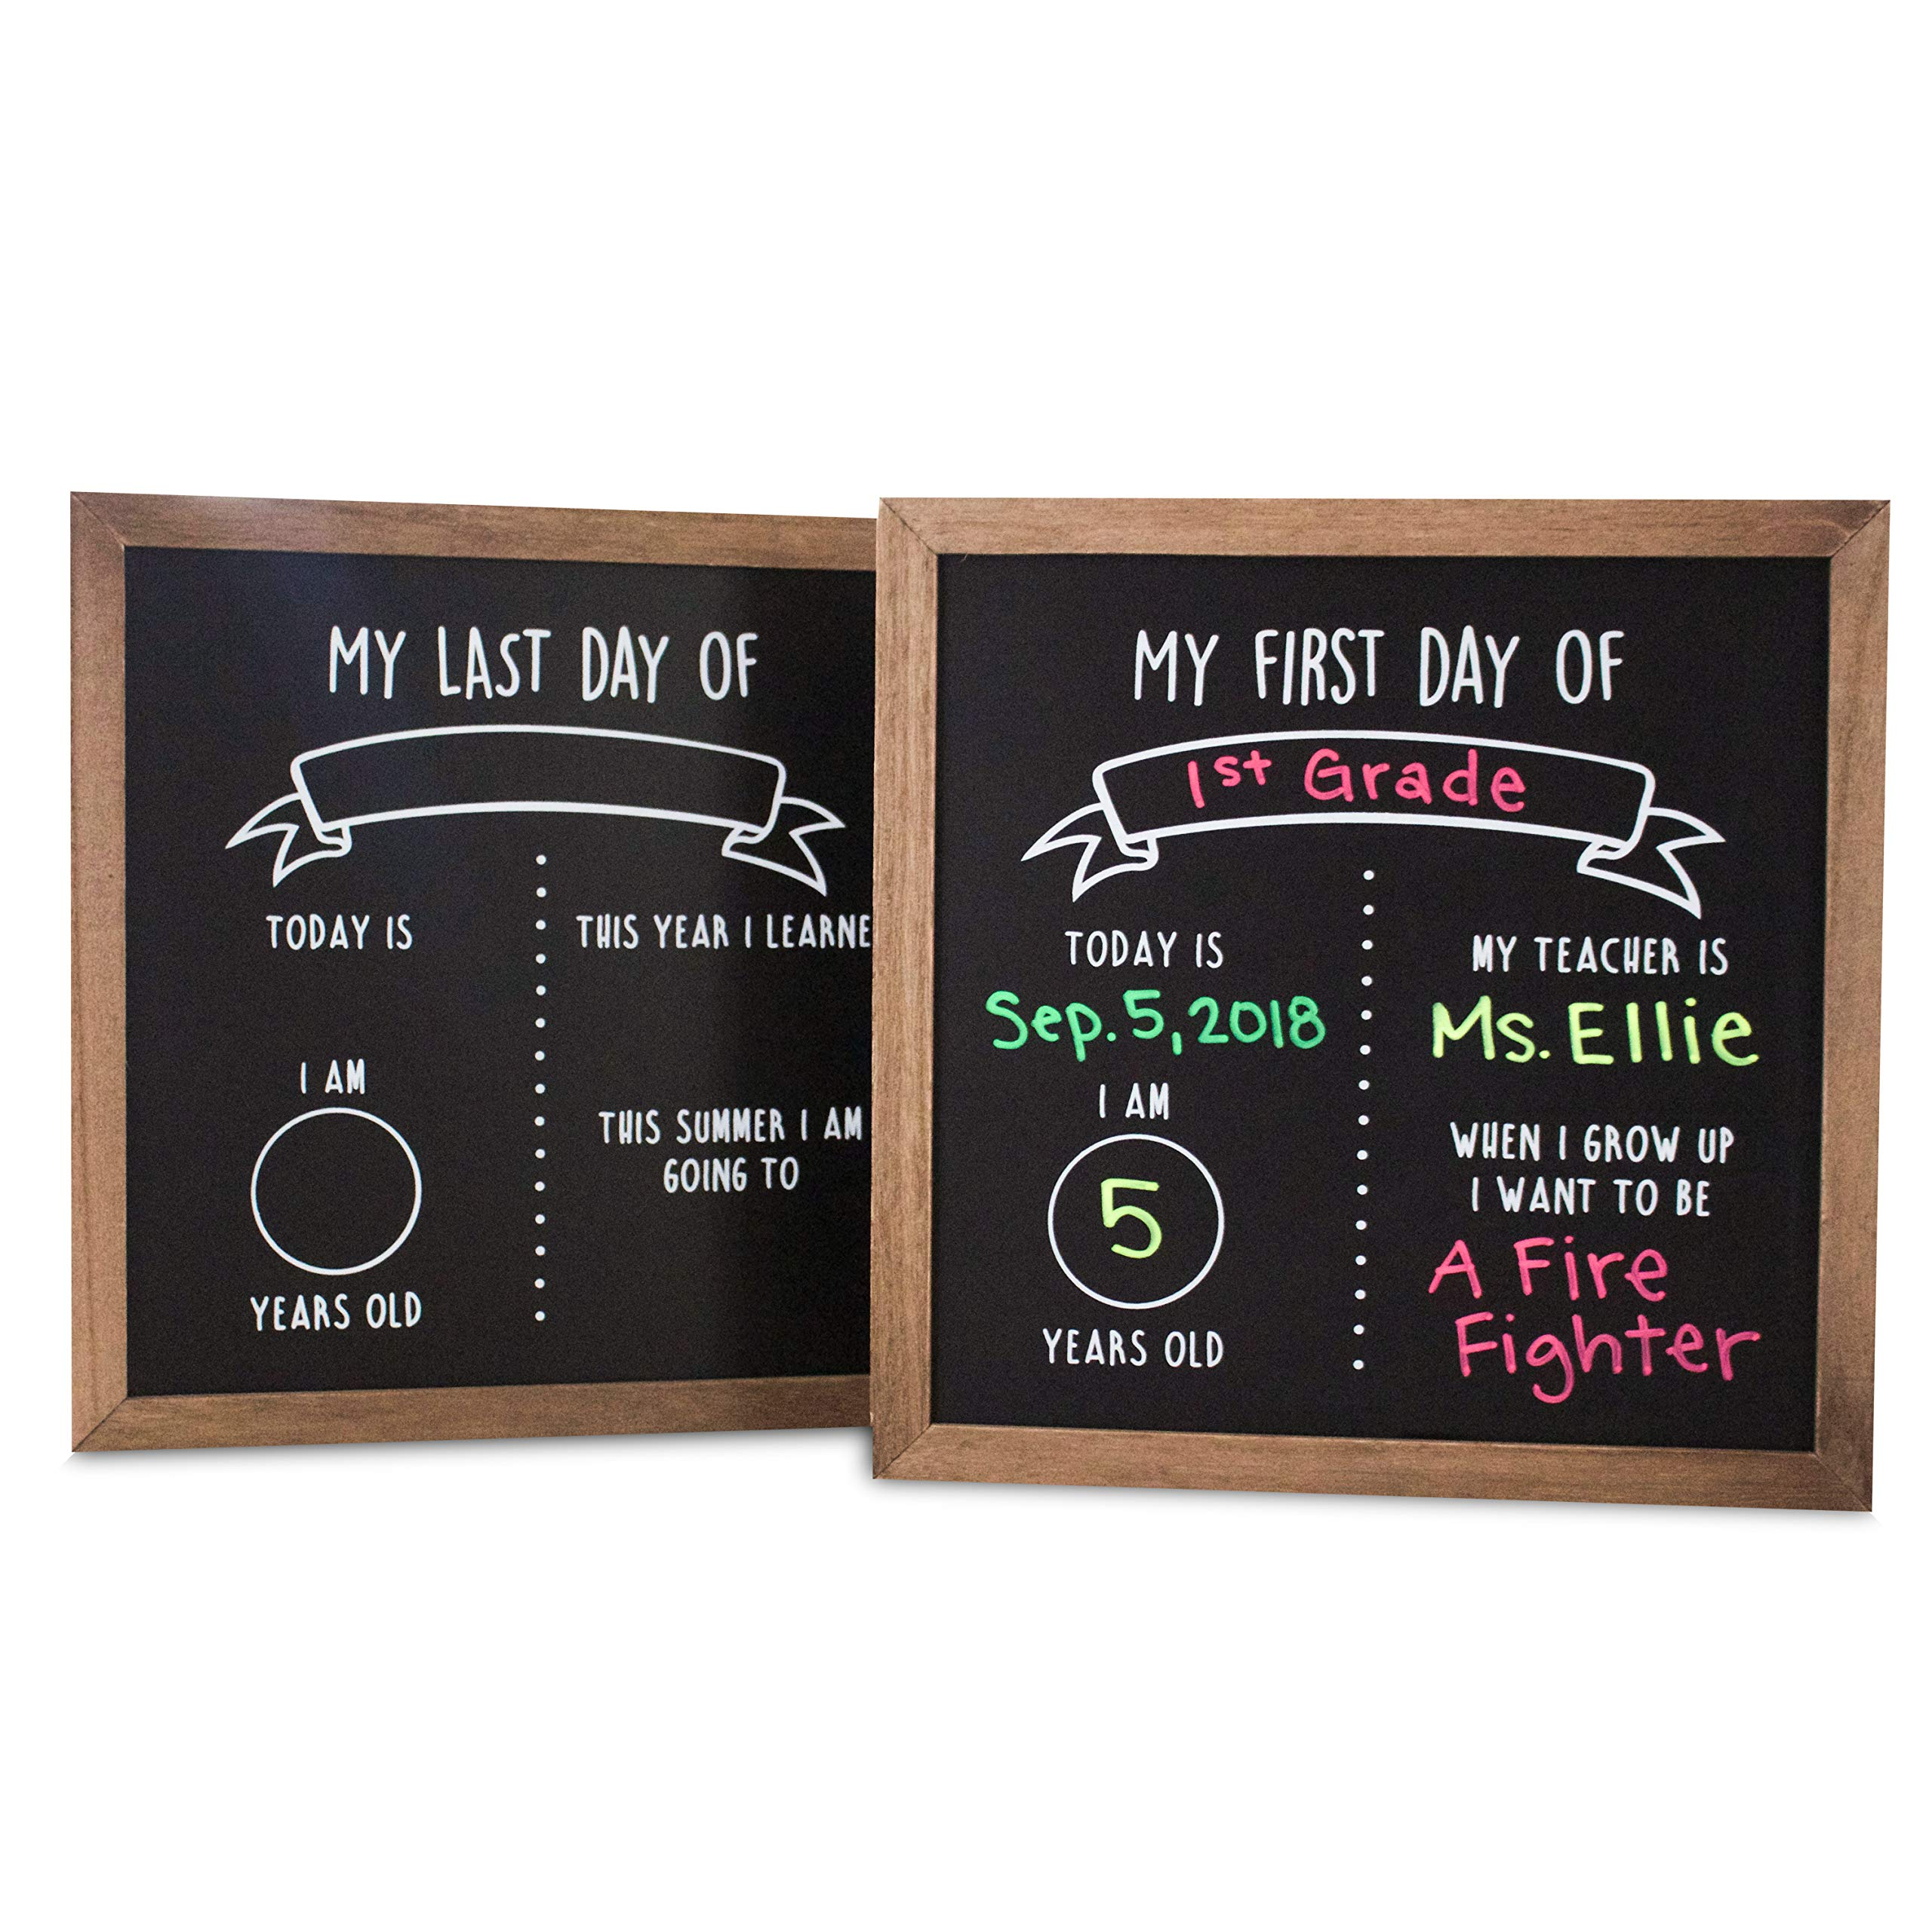 First and Last Day of School Reusable Chalkboard Sign | 12'' x 12'' Reversible Wood Framed Chalkboard | Back to School Photo Prop Board Double Sided